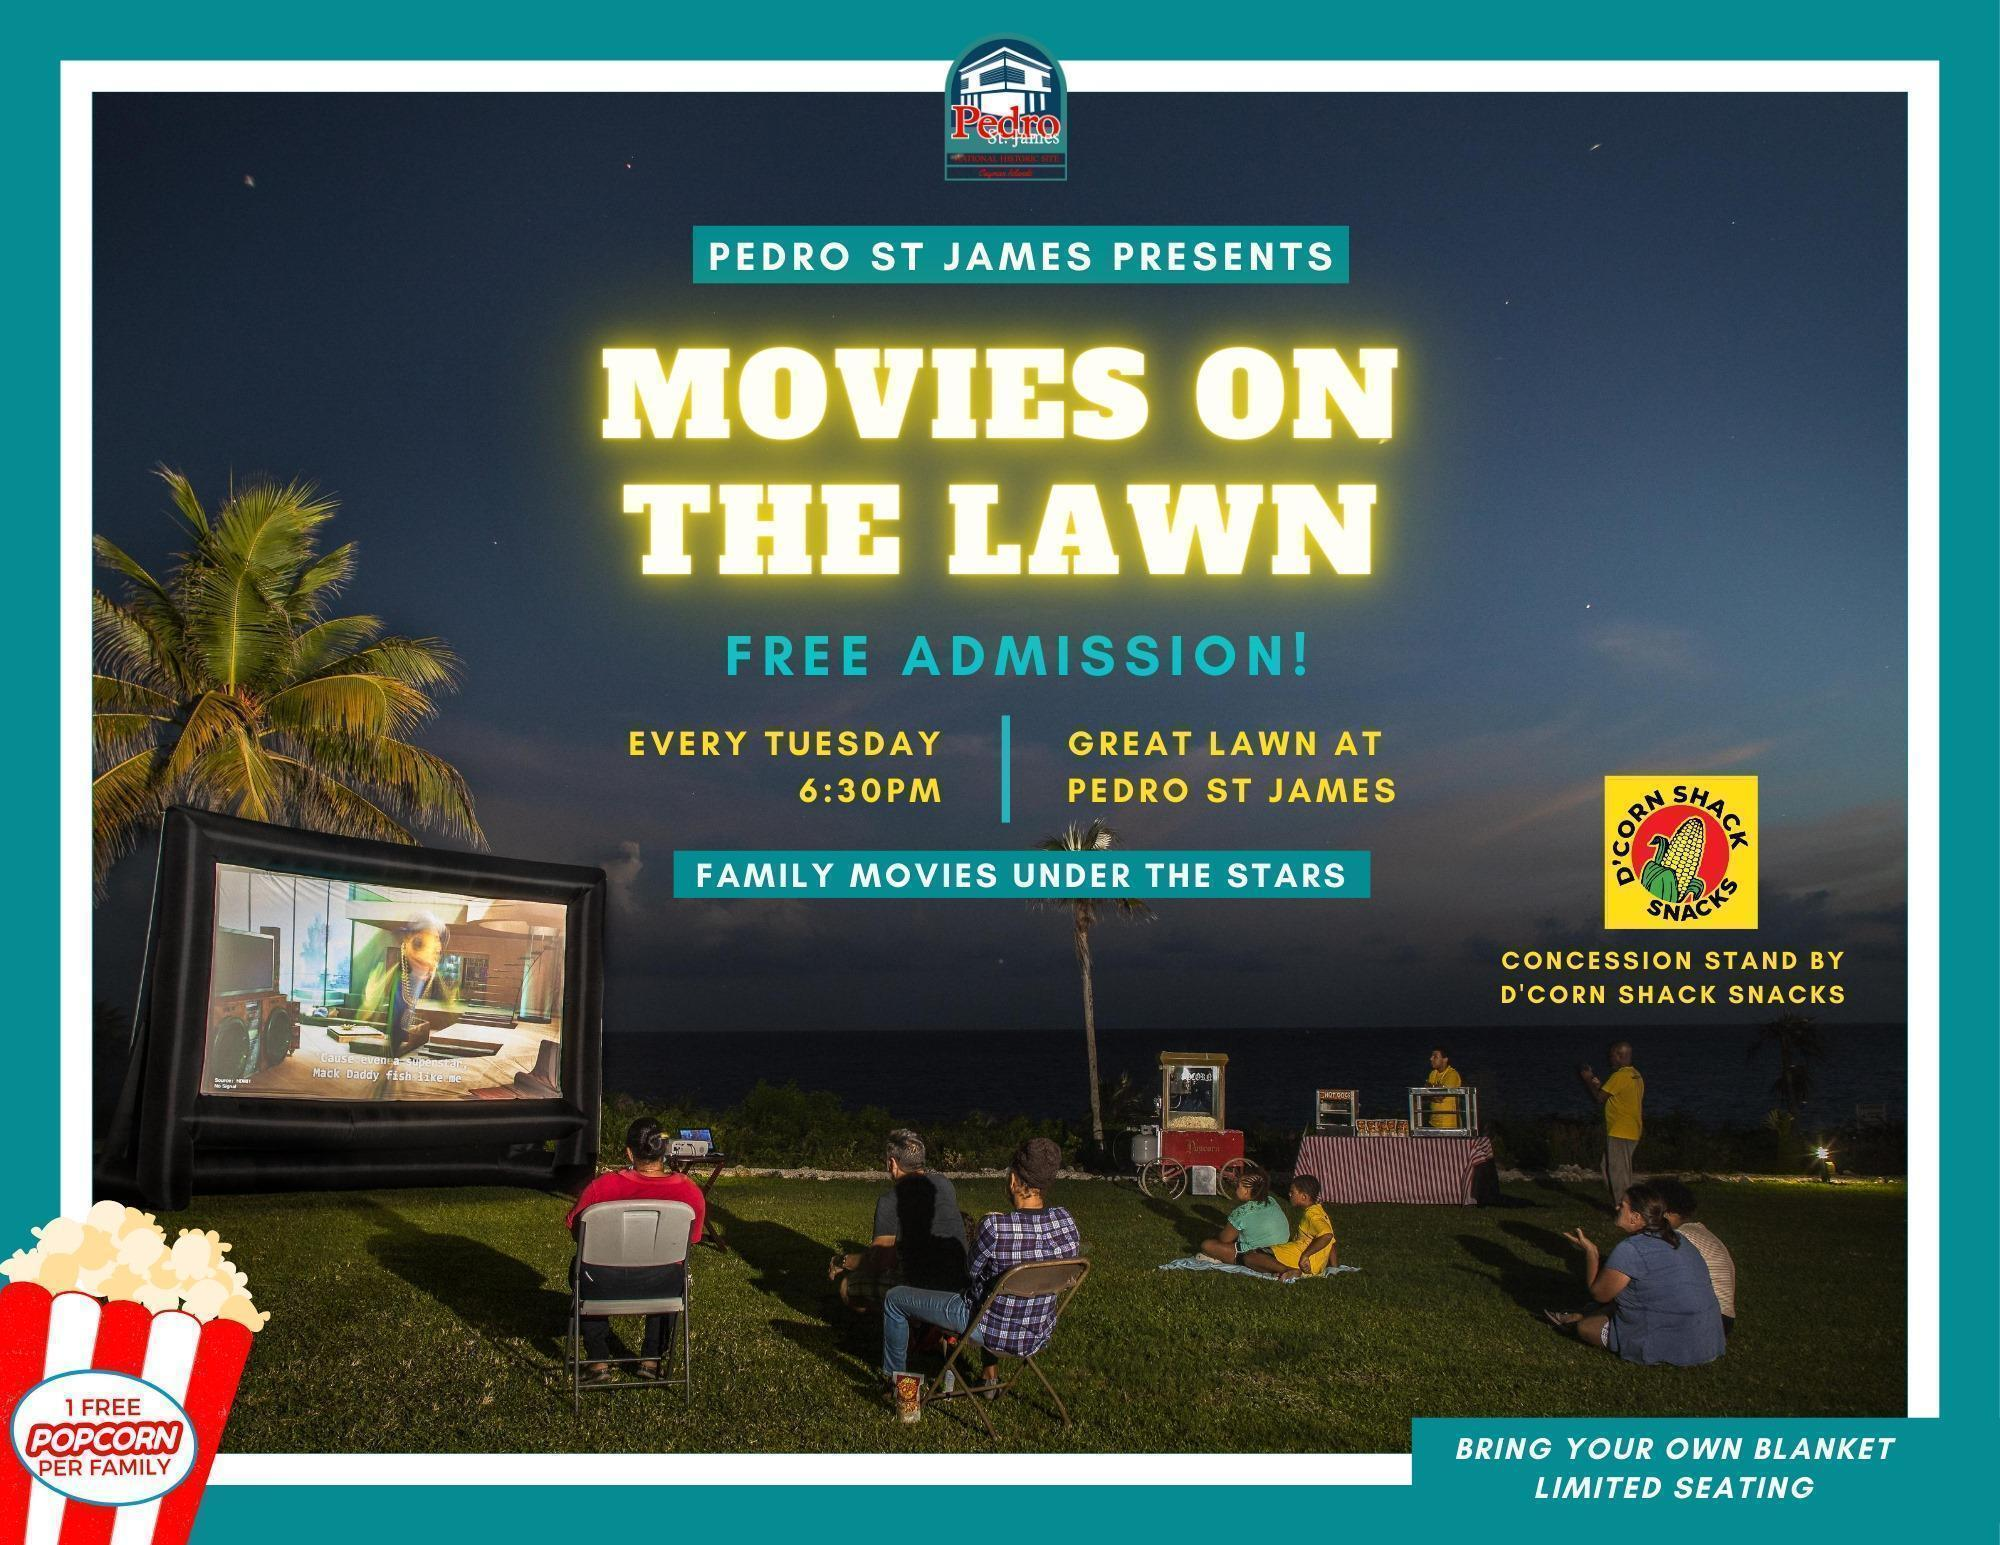 Movies on the Lawn at Pedro St James